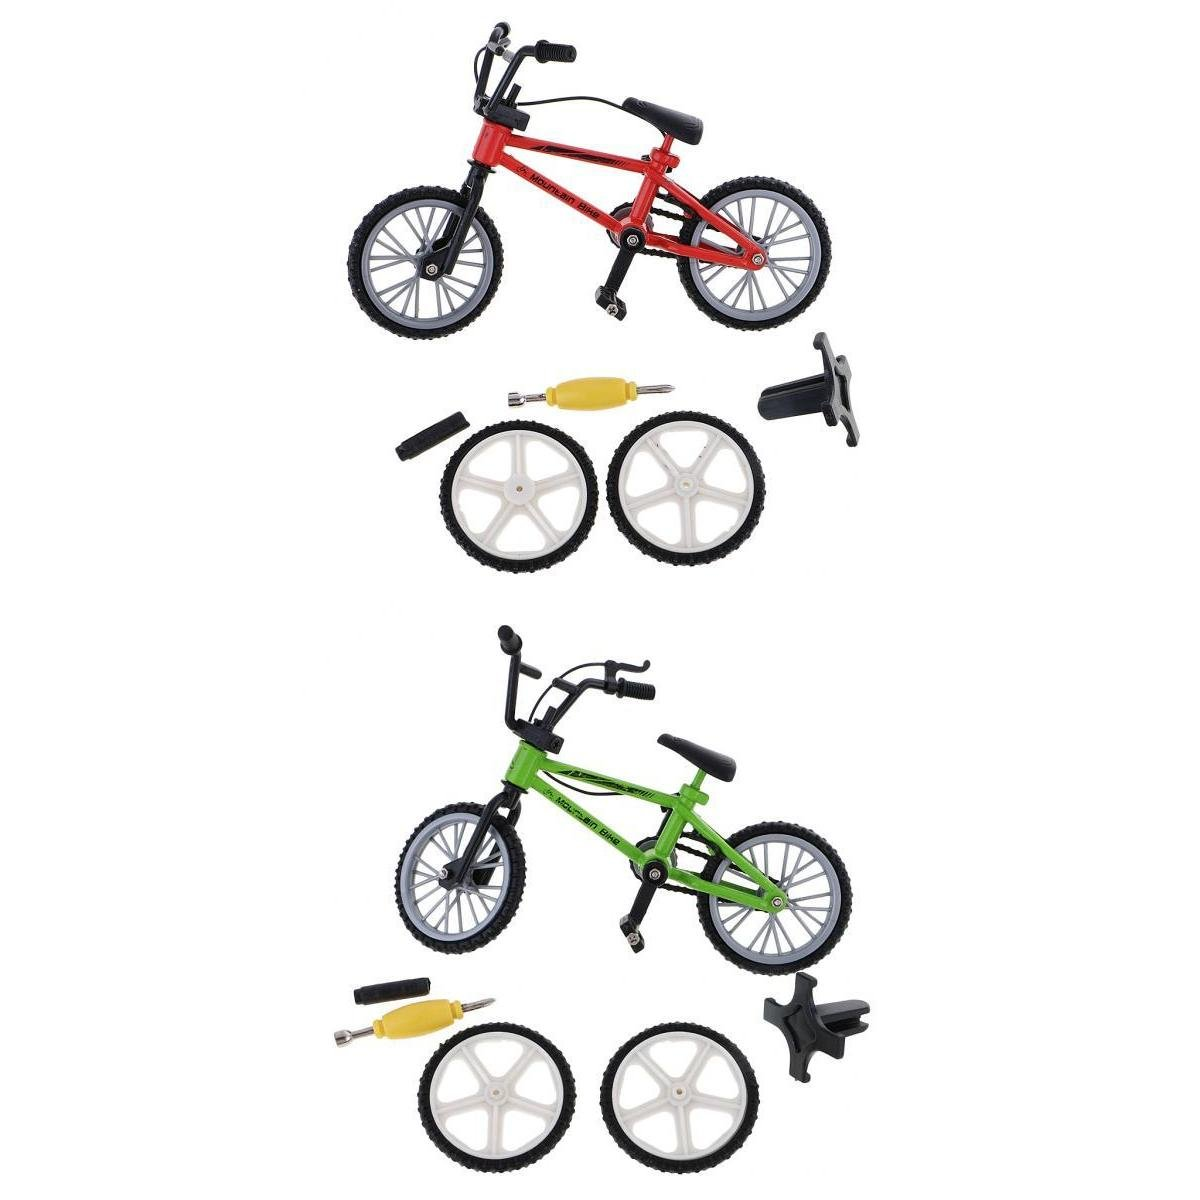 Homyl 2x Finger Mountain Bikes Bicycle w/ Spare Tires for Children Kids Collection